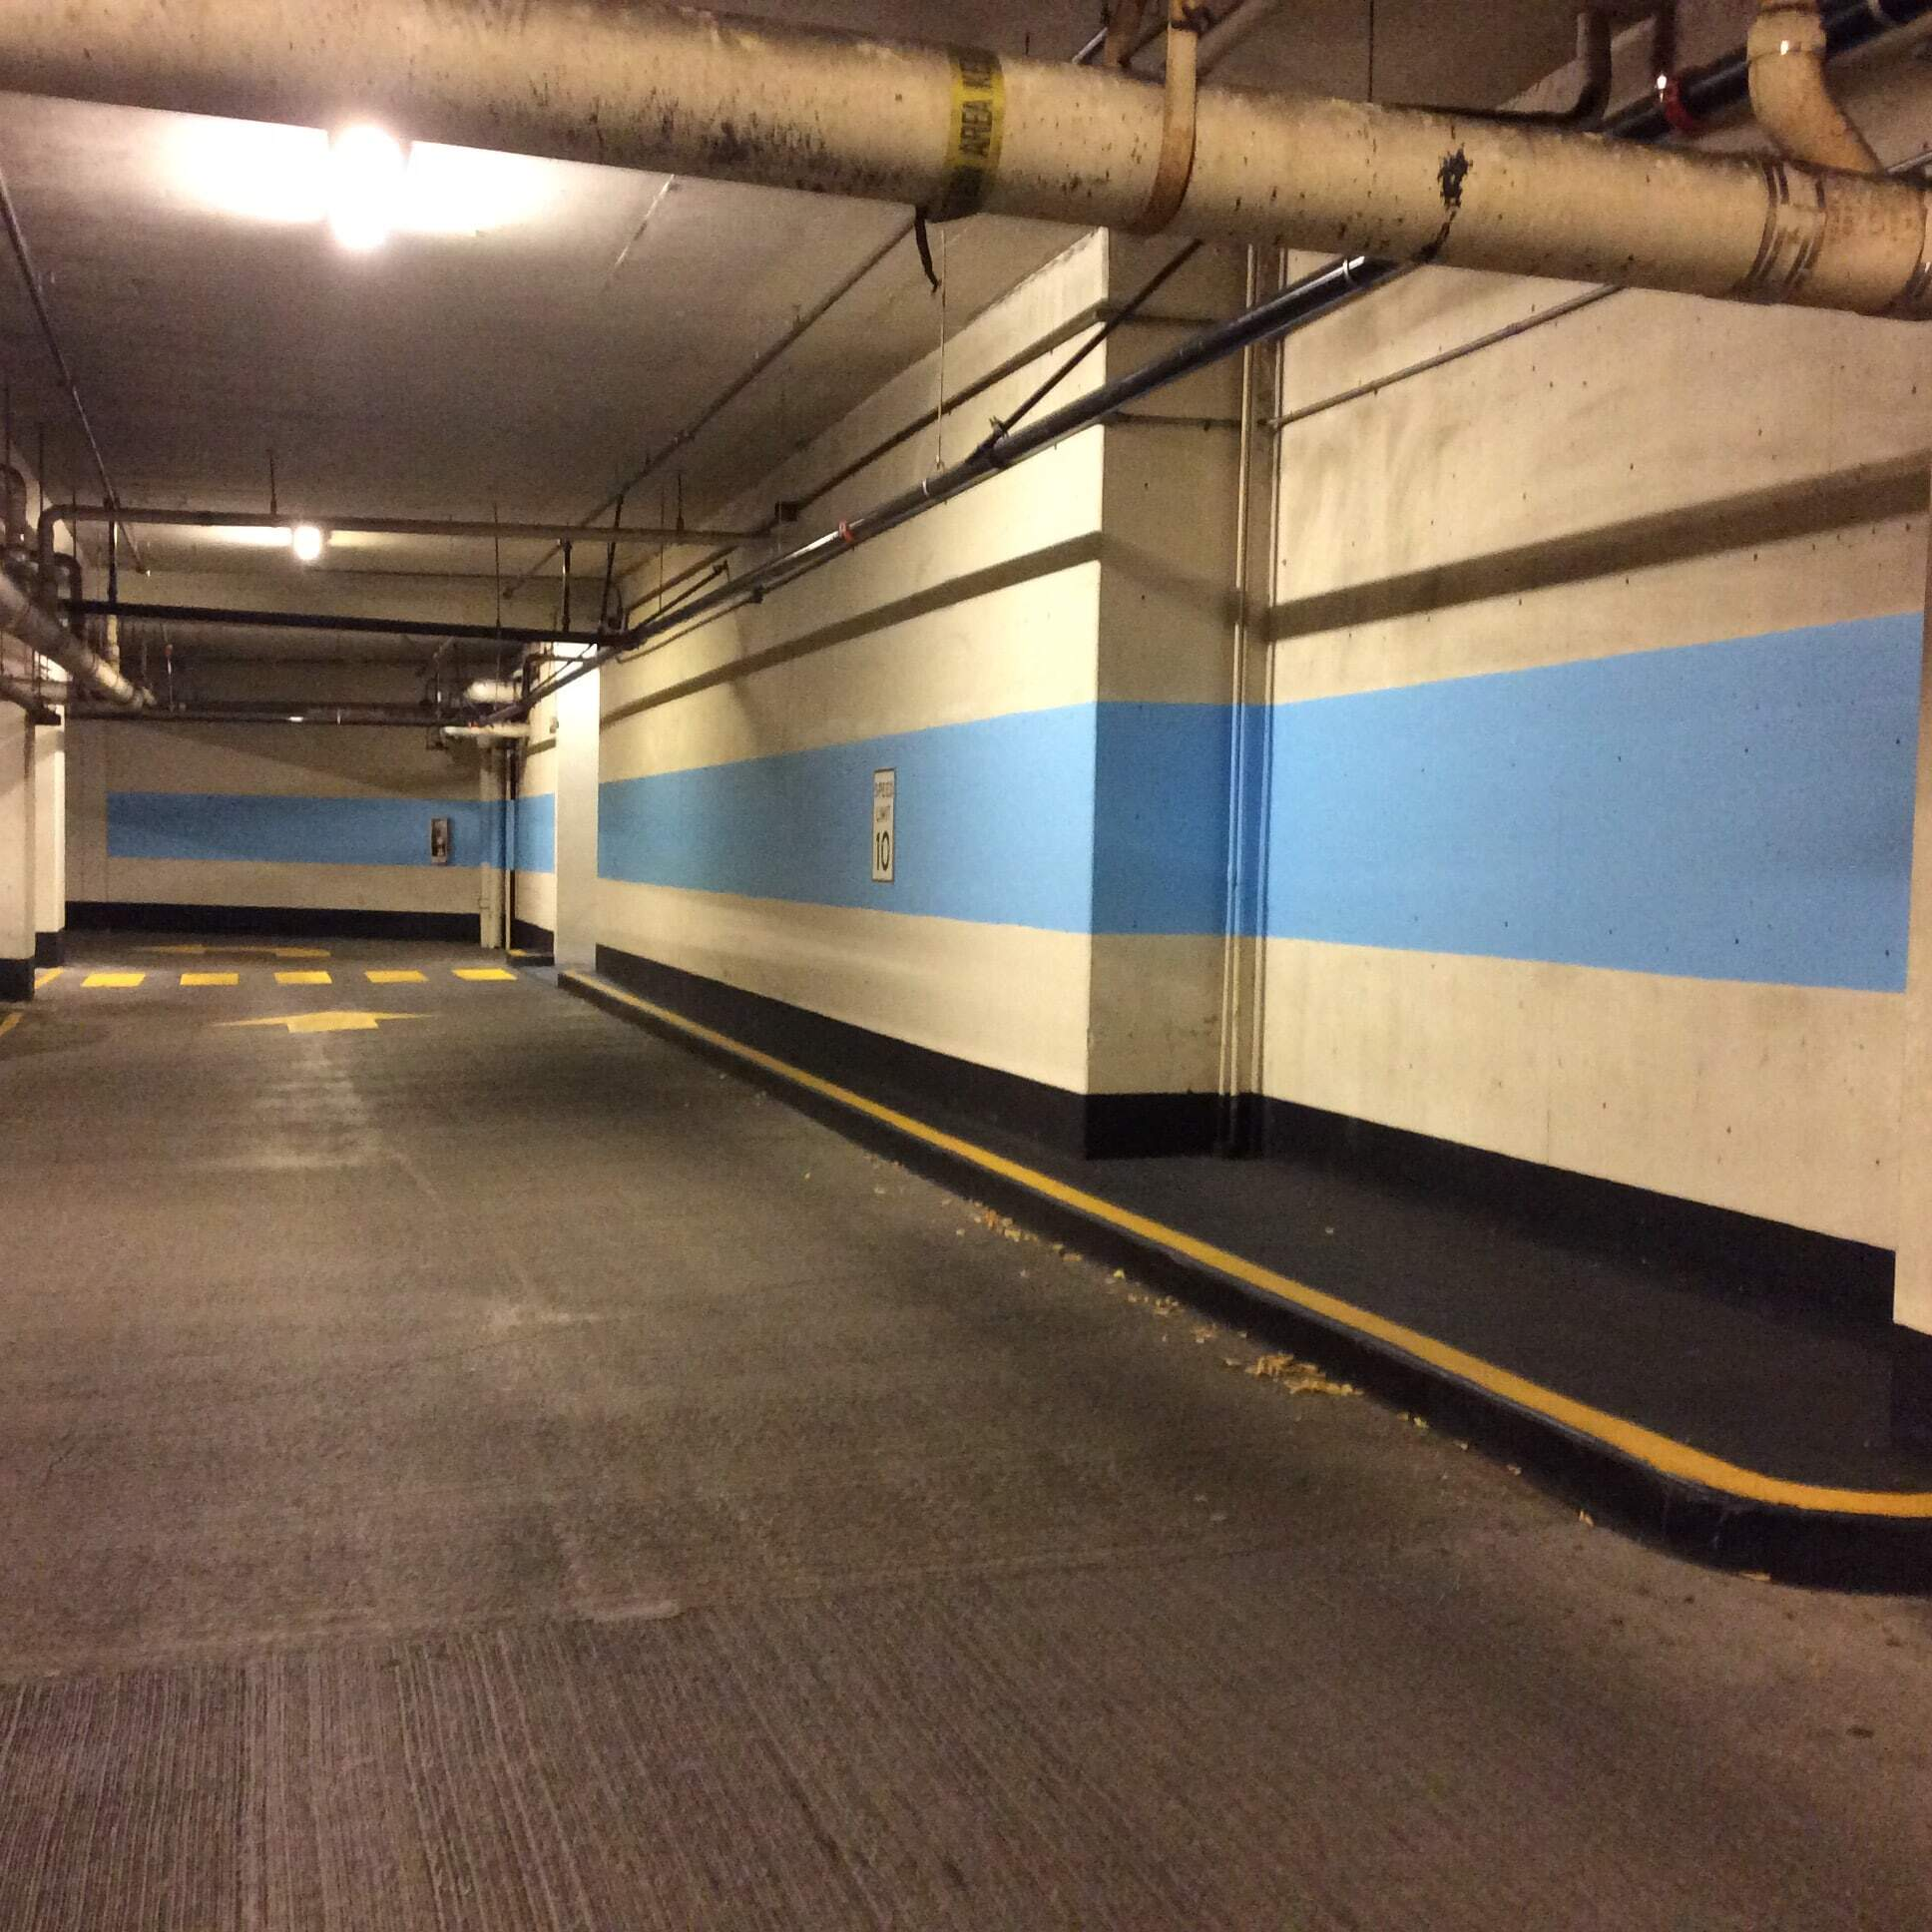 Commercial painting for Premier Parking